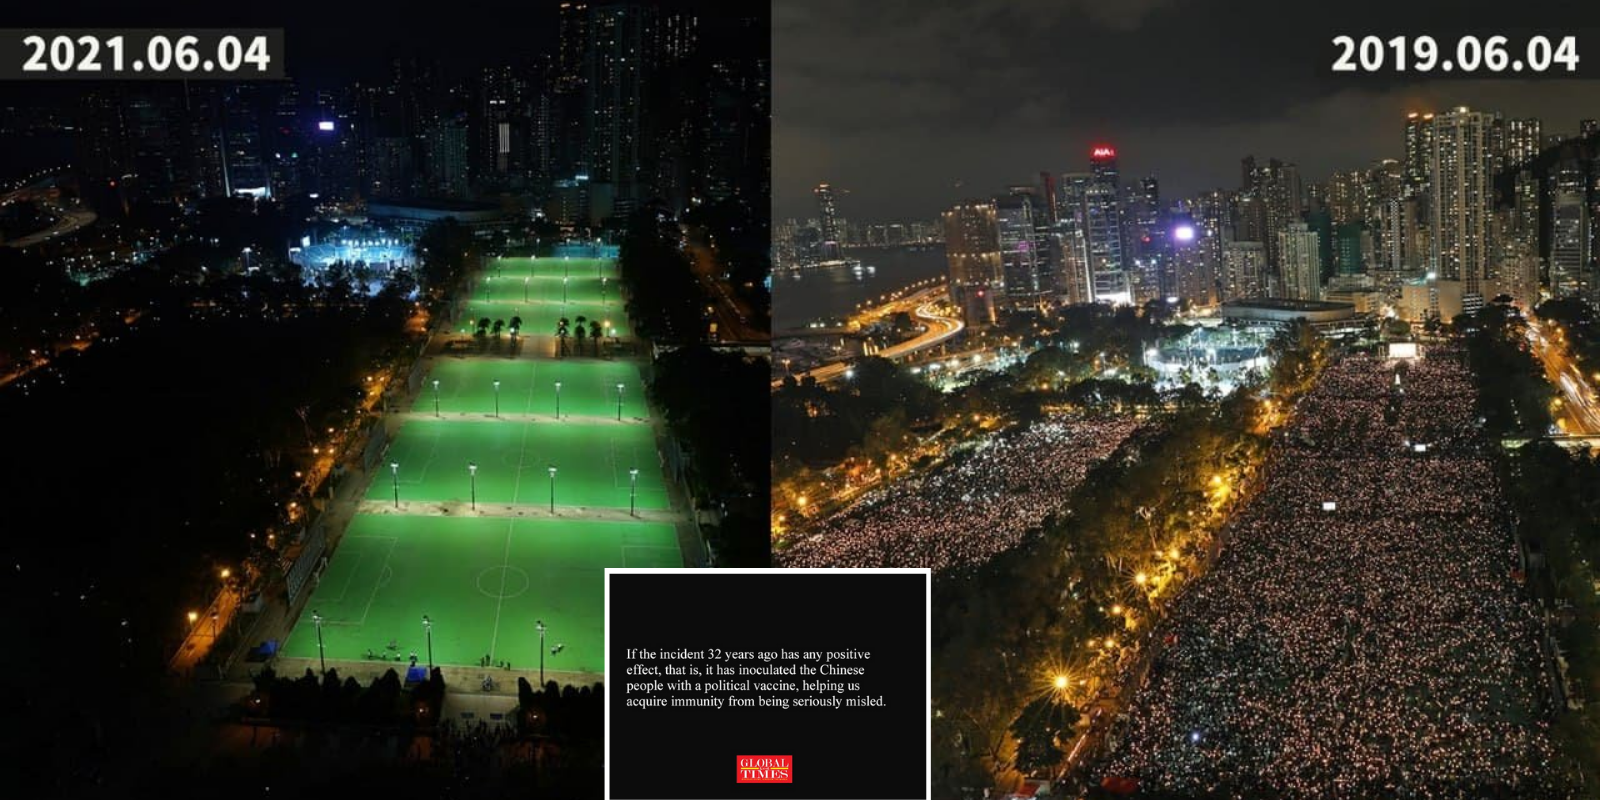 Chinese state media says they are 'laughing' at people commemorating the Tiananmen Square massacre